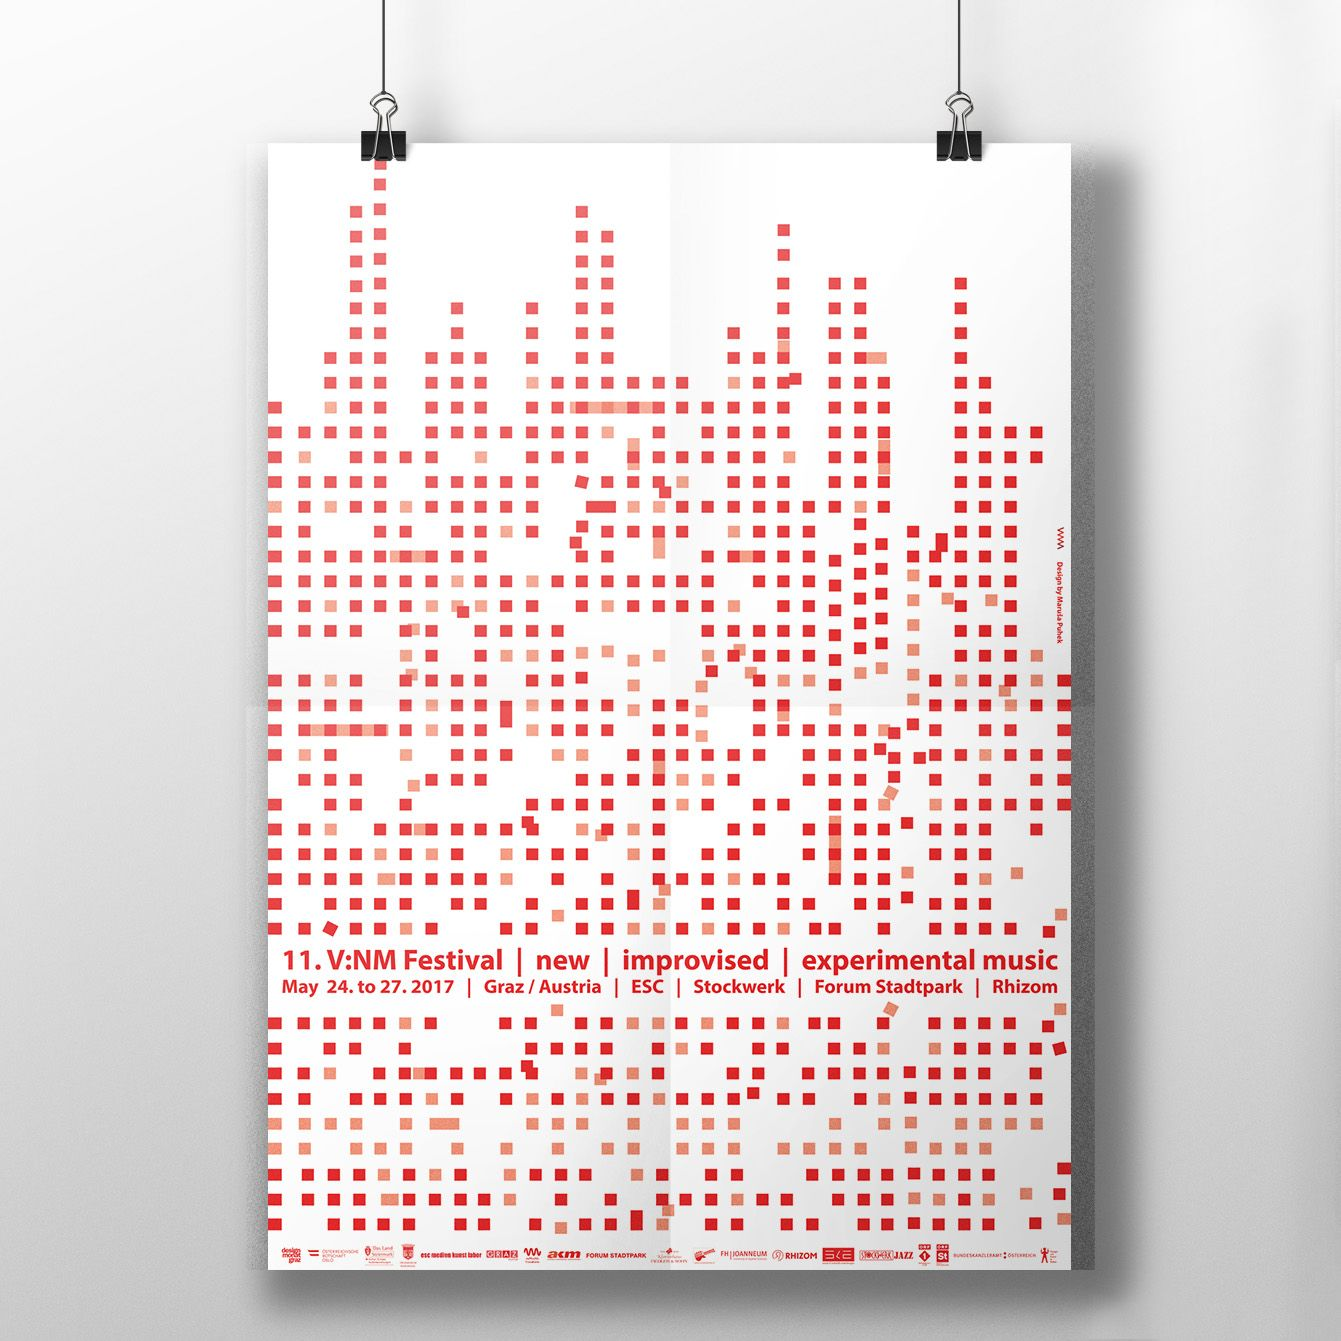 V:NM poster experimental music Austria design sound equalizer